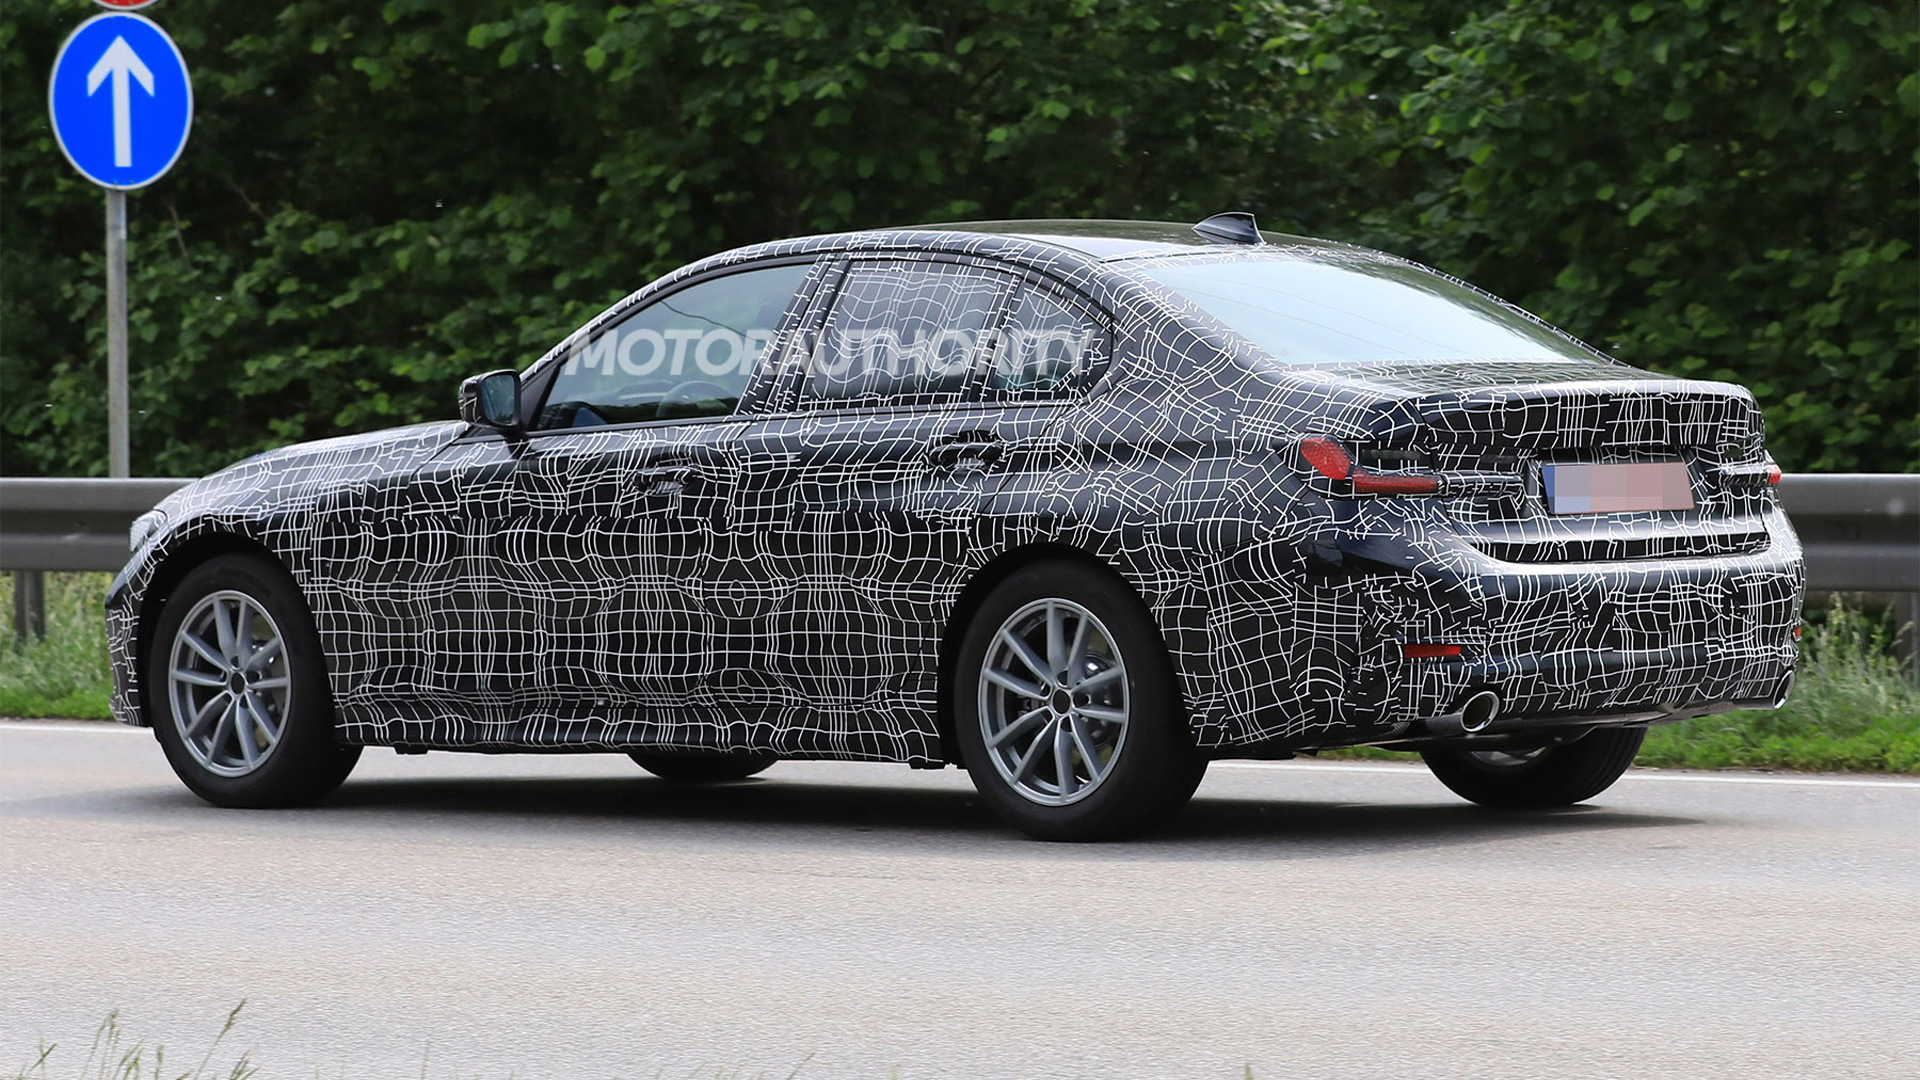 2020 Spy Shots BMW 3 Series Spesification